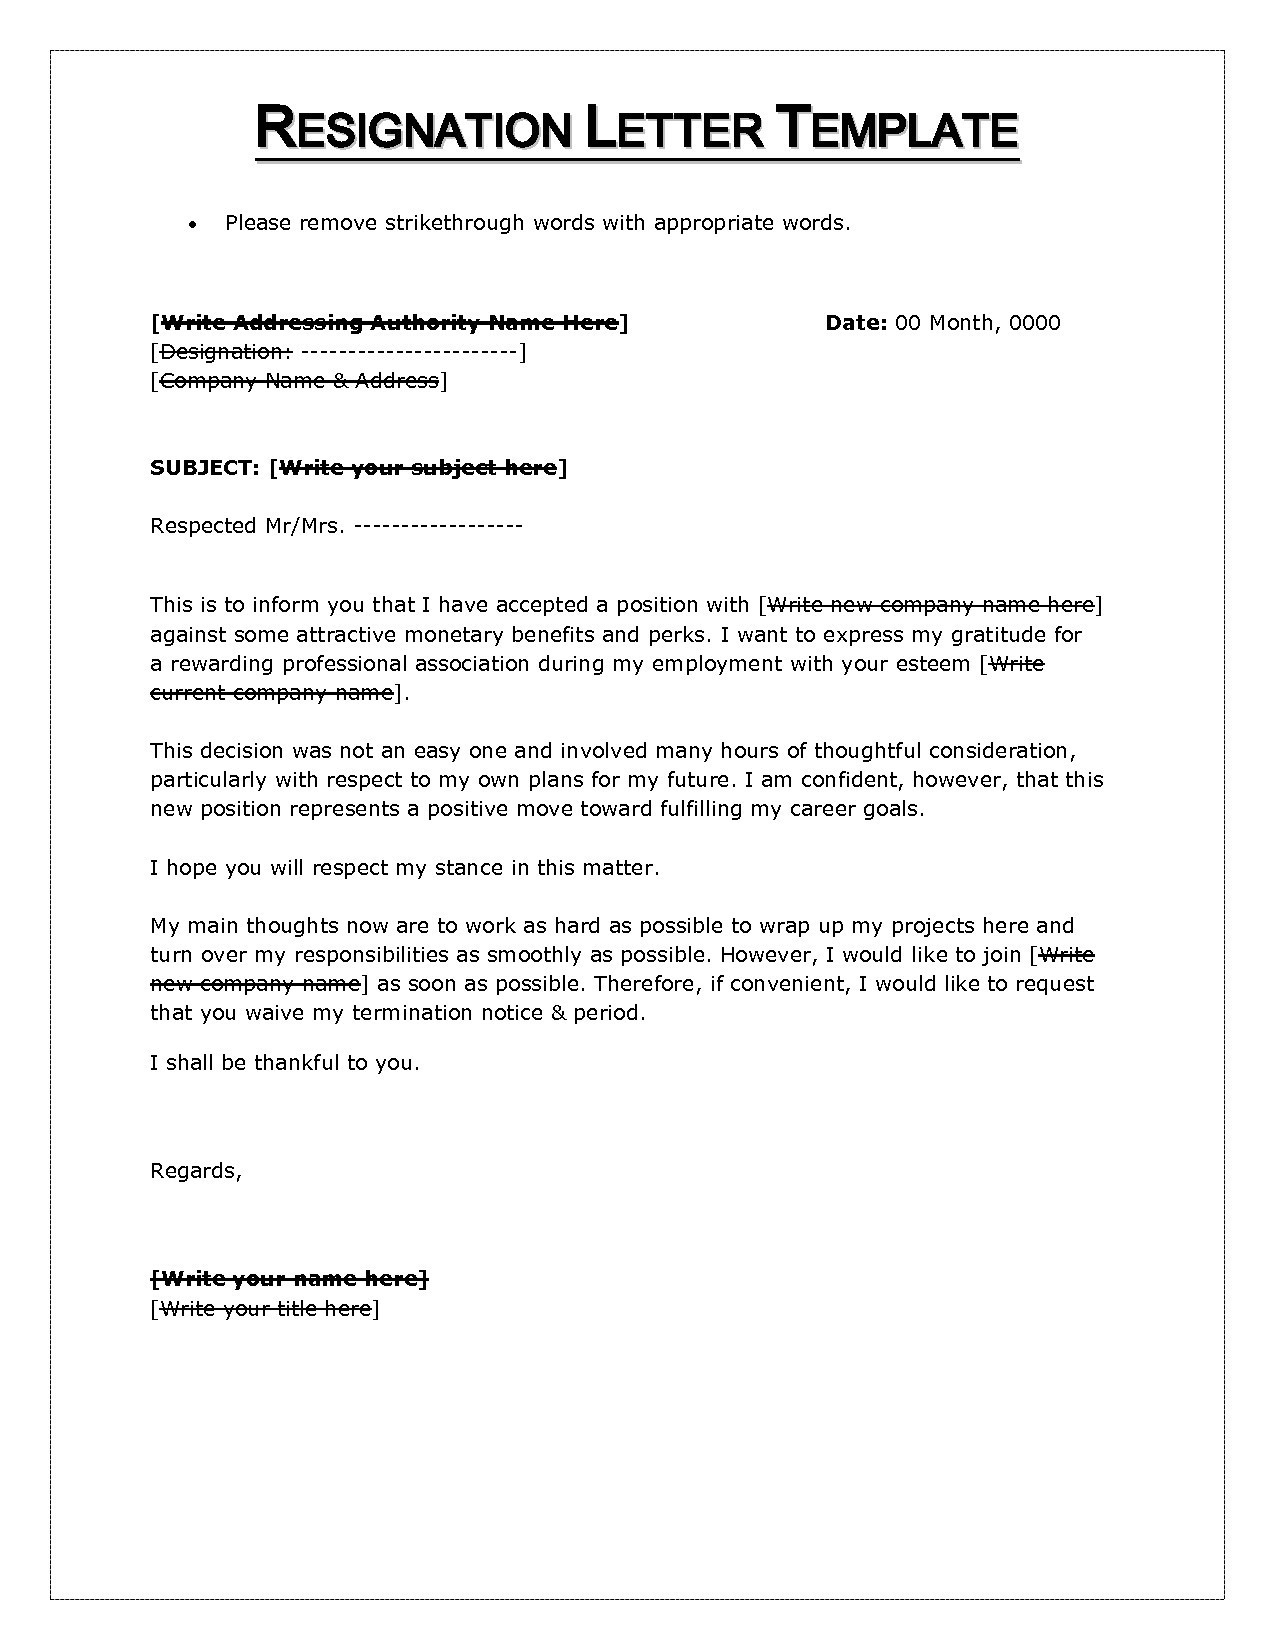 Awesome Microsoft Word Resignation Letter Template   Letter Writing Format Microsoft  Word Best Resignation Letter Format